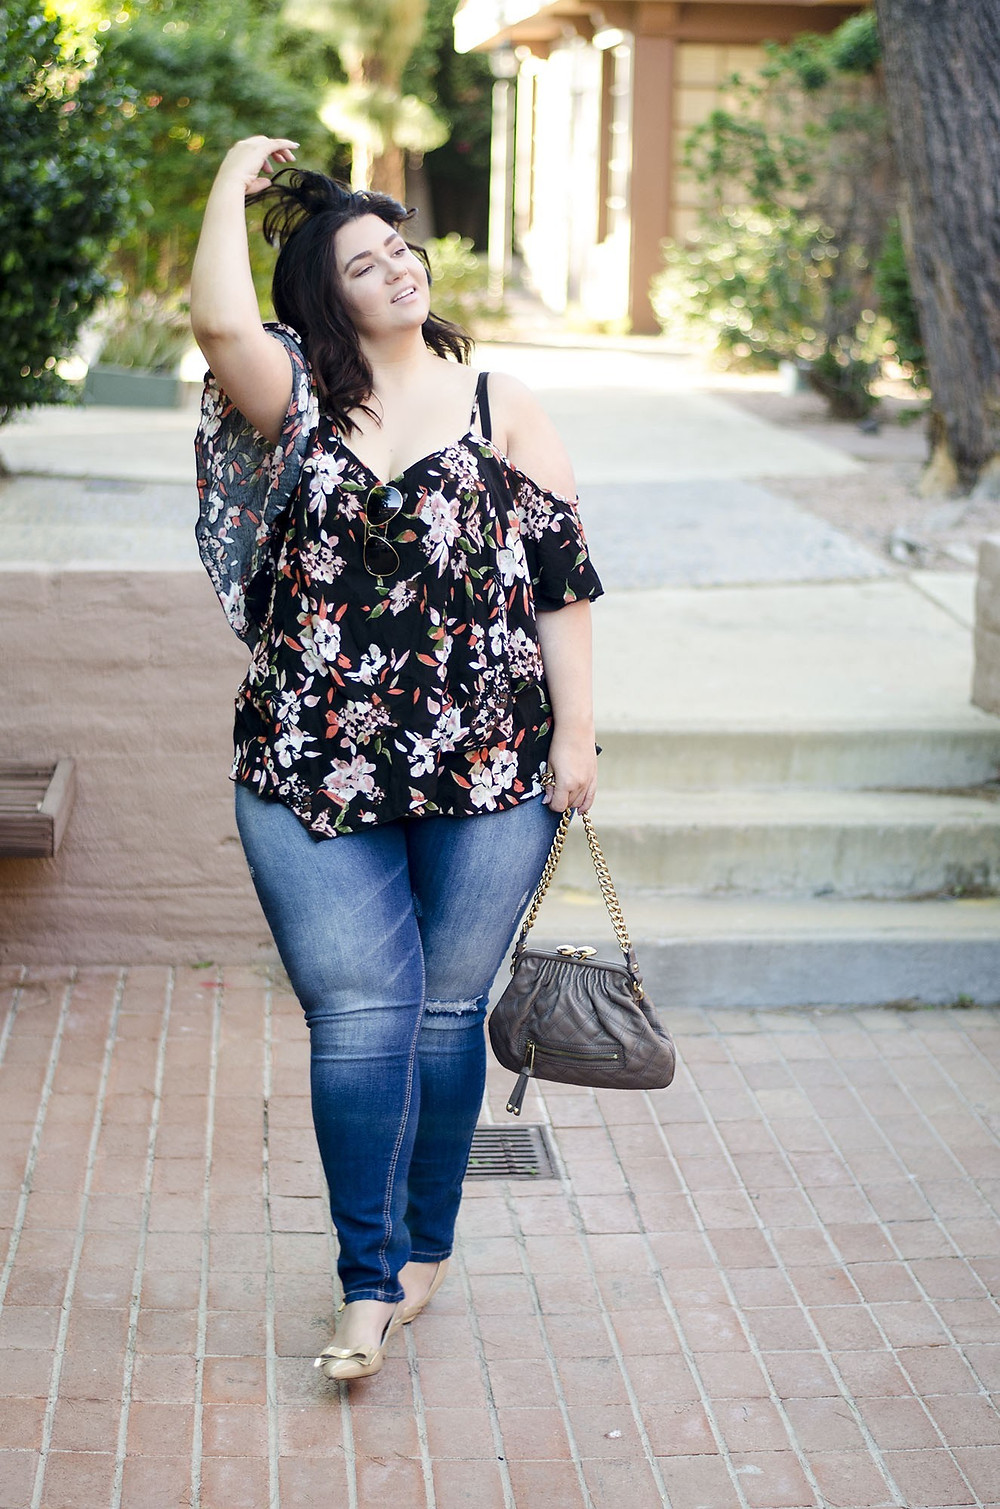 plus size jeans ftf fashion to figure casual cute boho dressy date night  ootd crystal coons sometimes glam